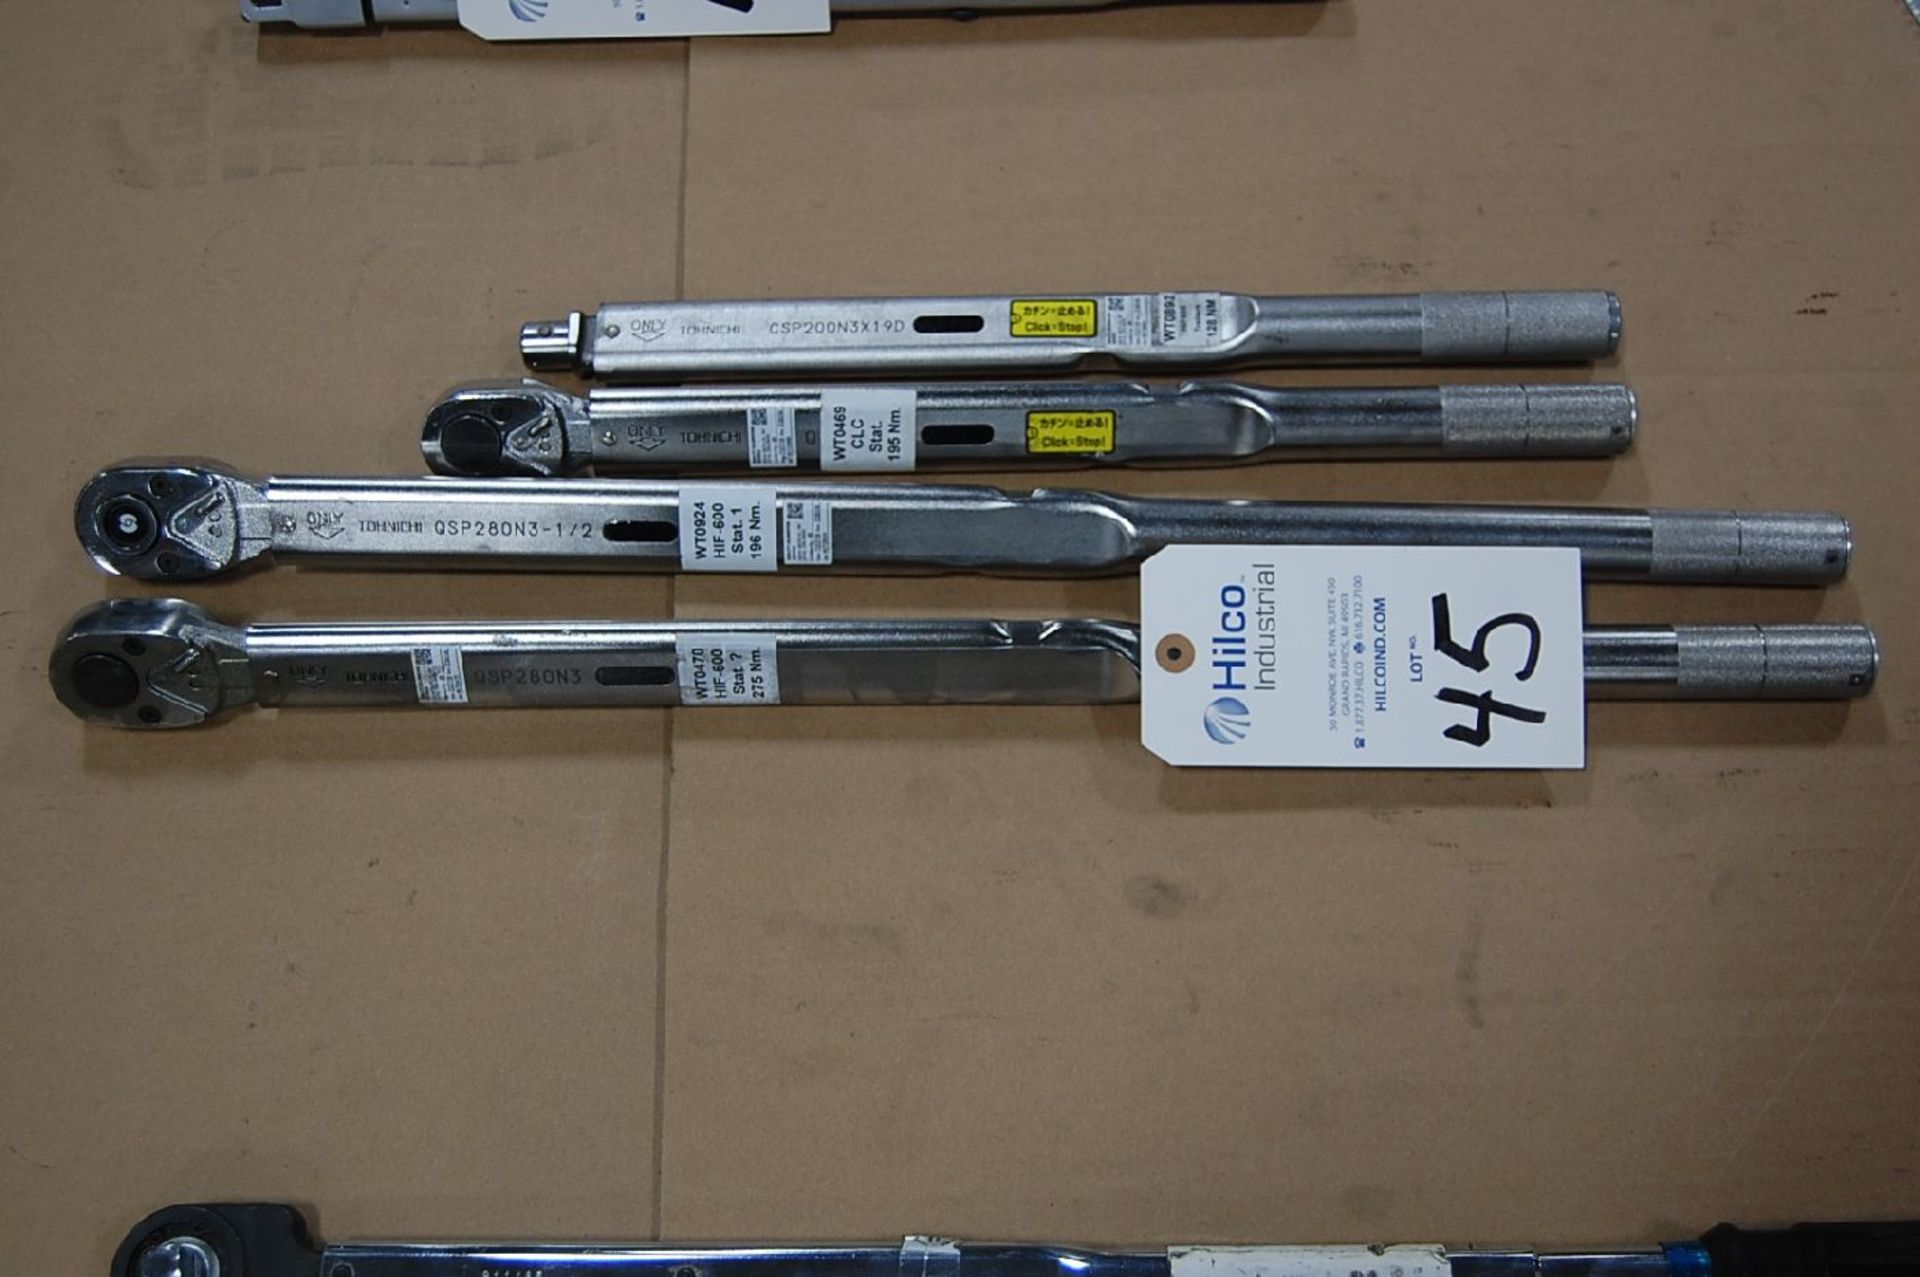 Lot 45 - Tohnichi Model QSP280N3 Torque Wrench